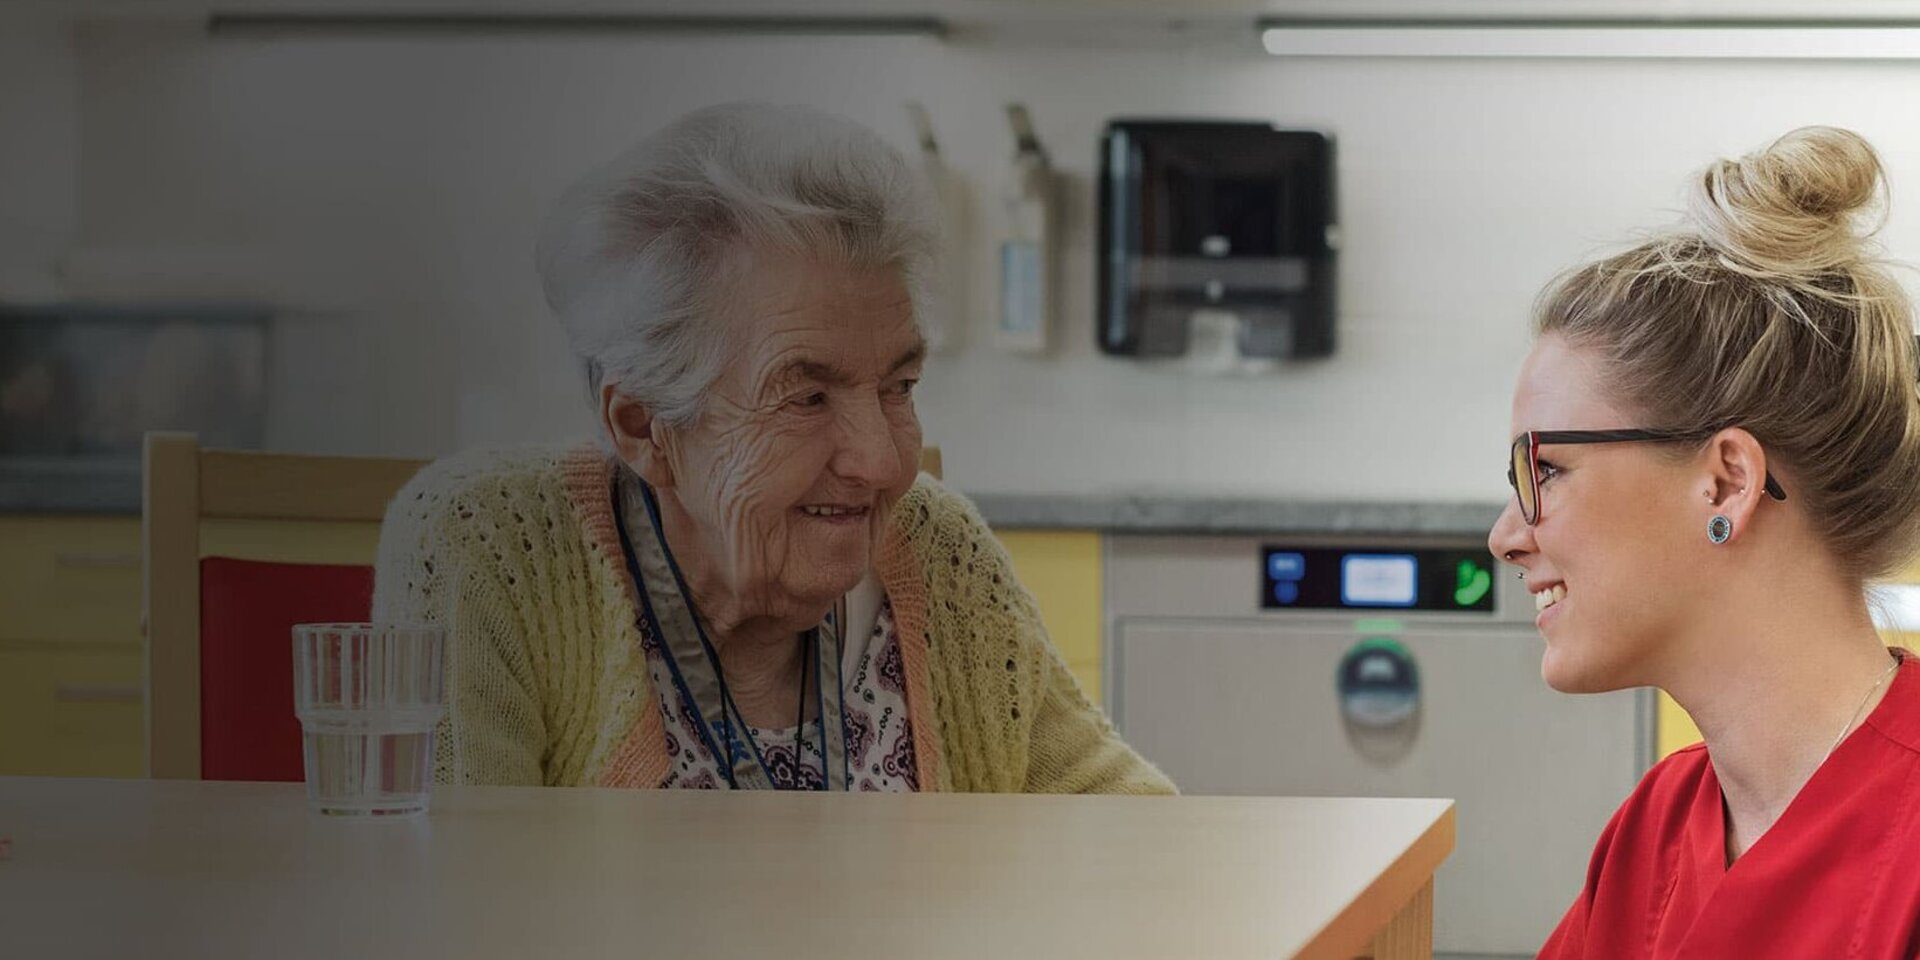 Hospital, rehab and health clinics as well as nursing and care homes